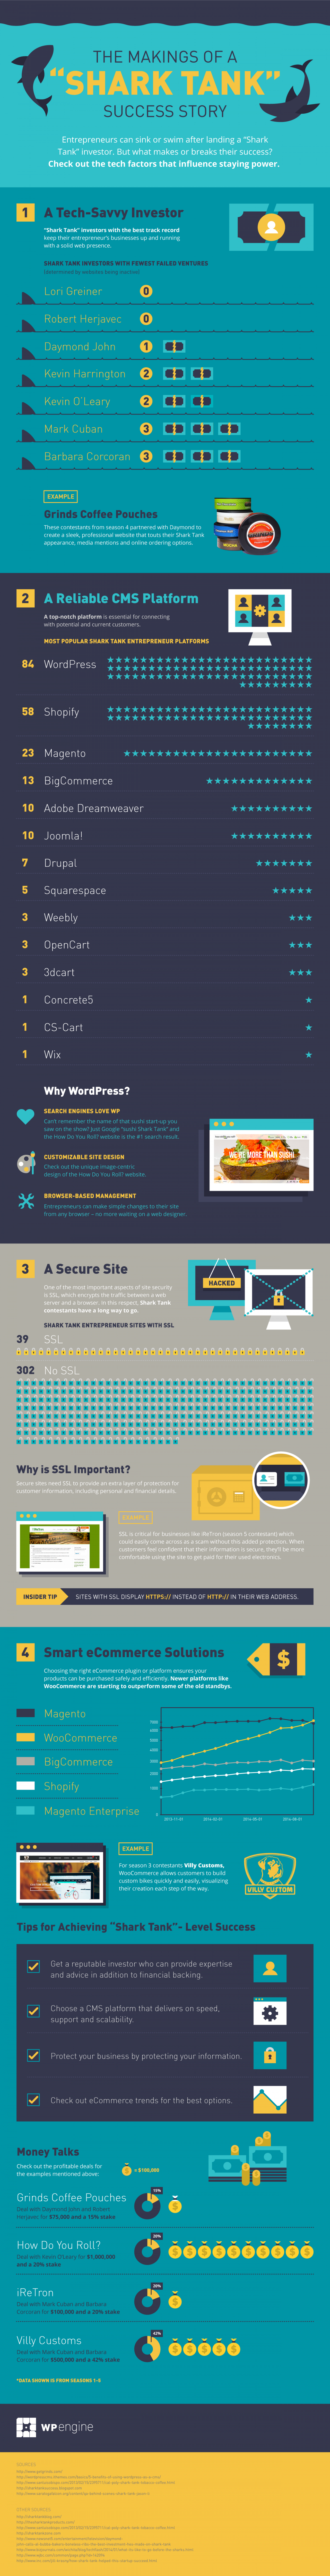 The Tech Shark Tank Contestant Are Using Infographic